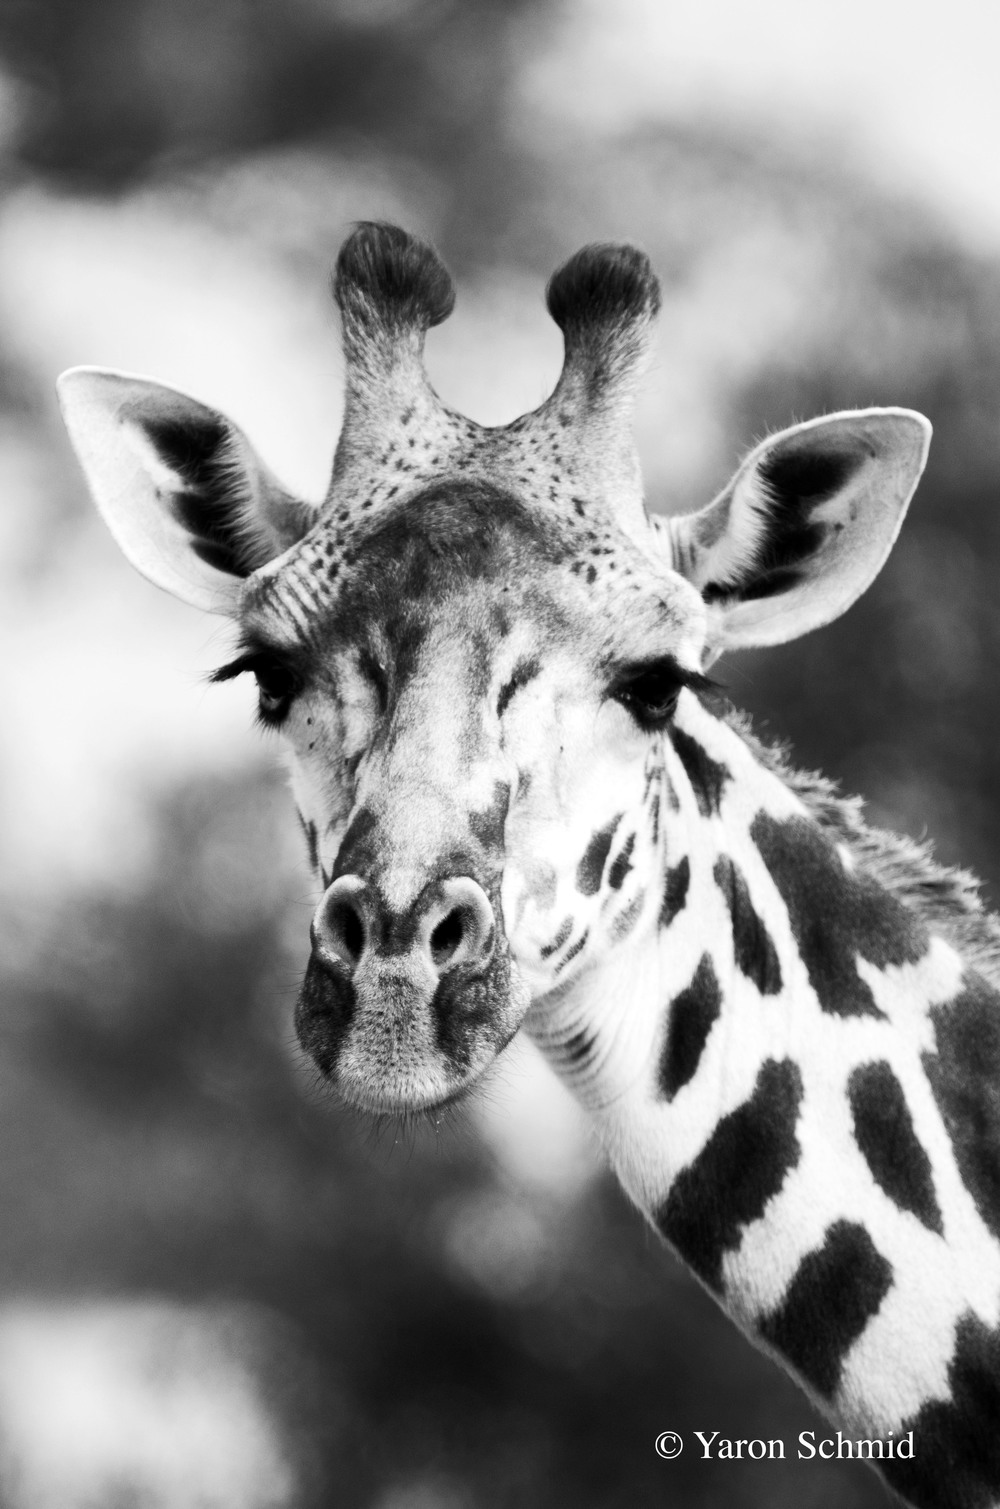 Giraffe Profile in Black and White